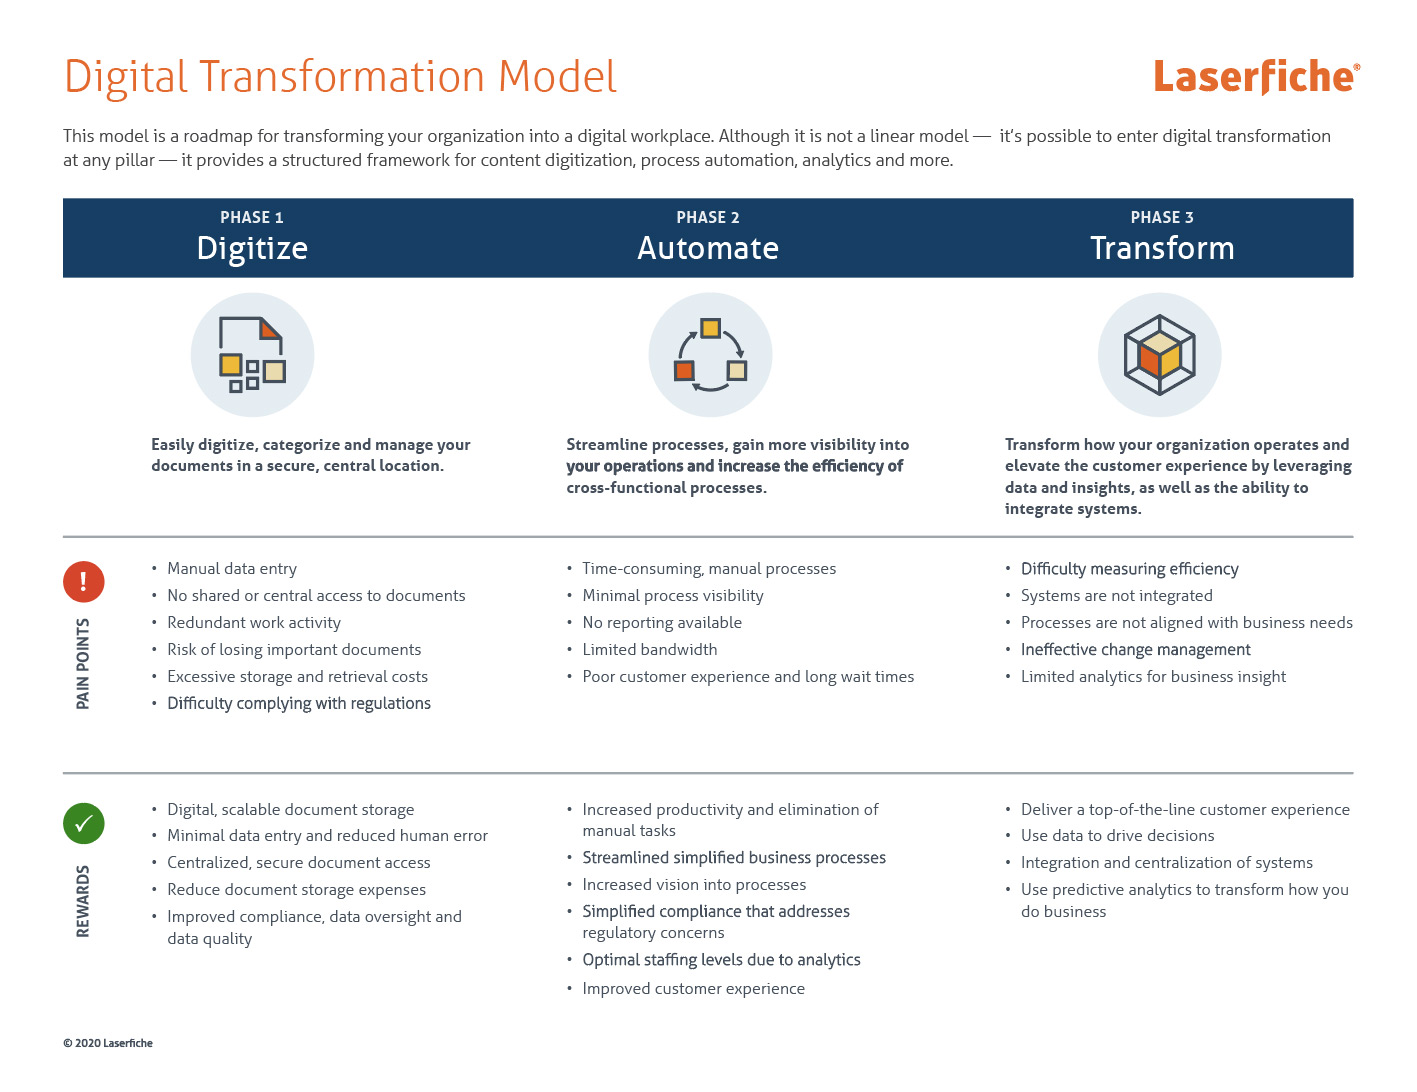 laserfiche digital transformation model